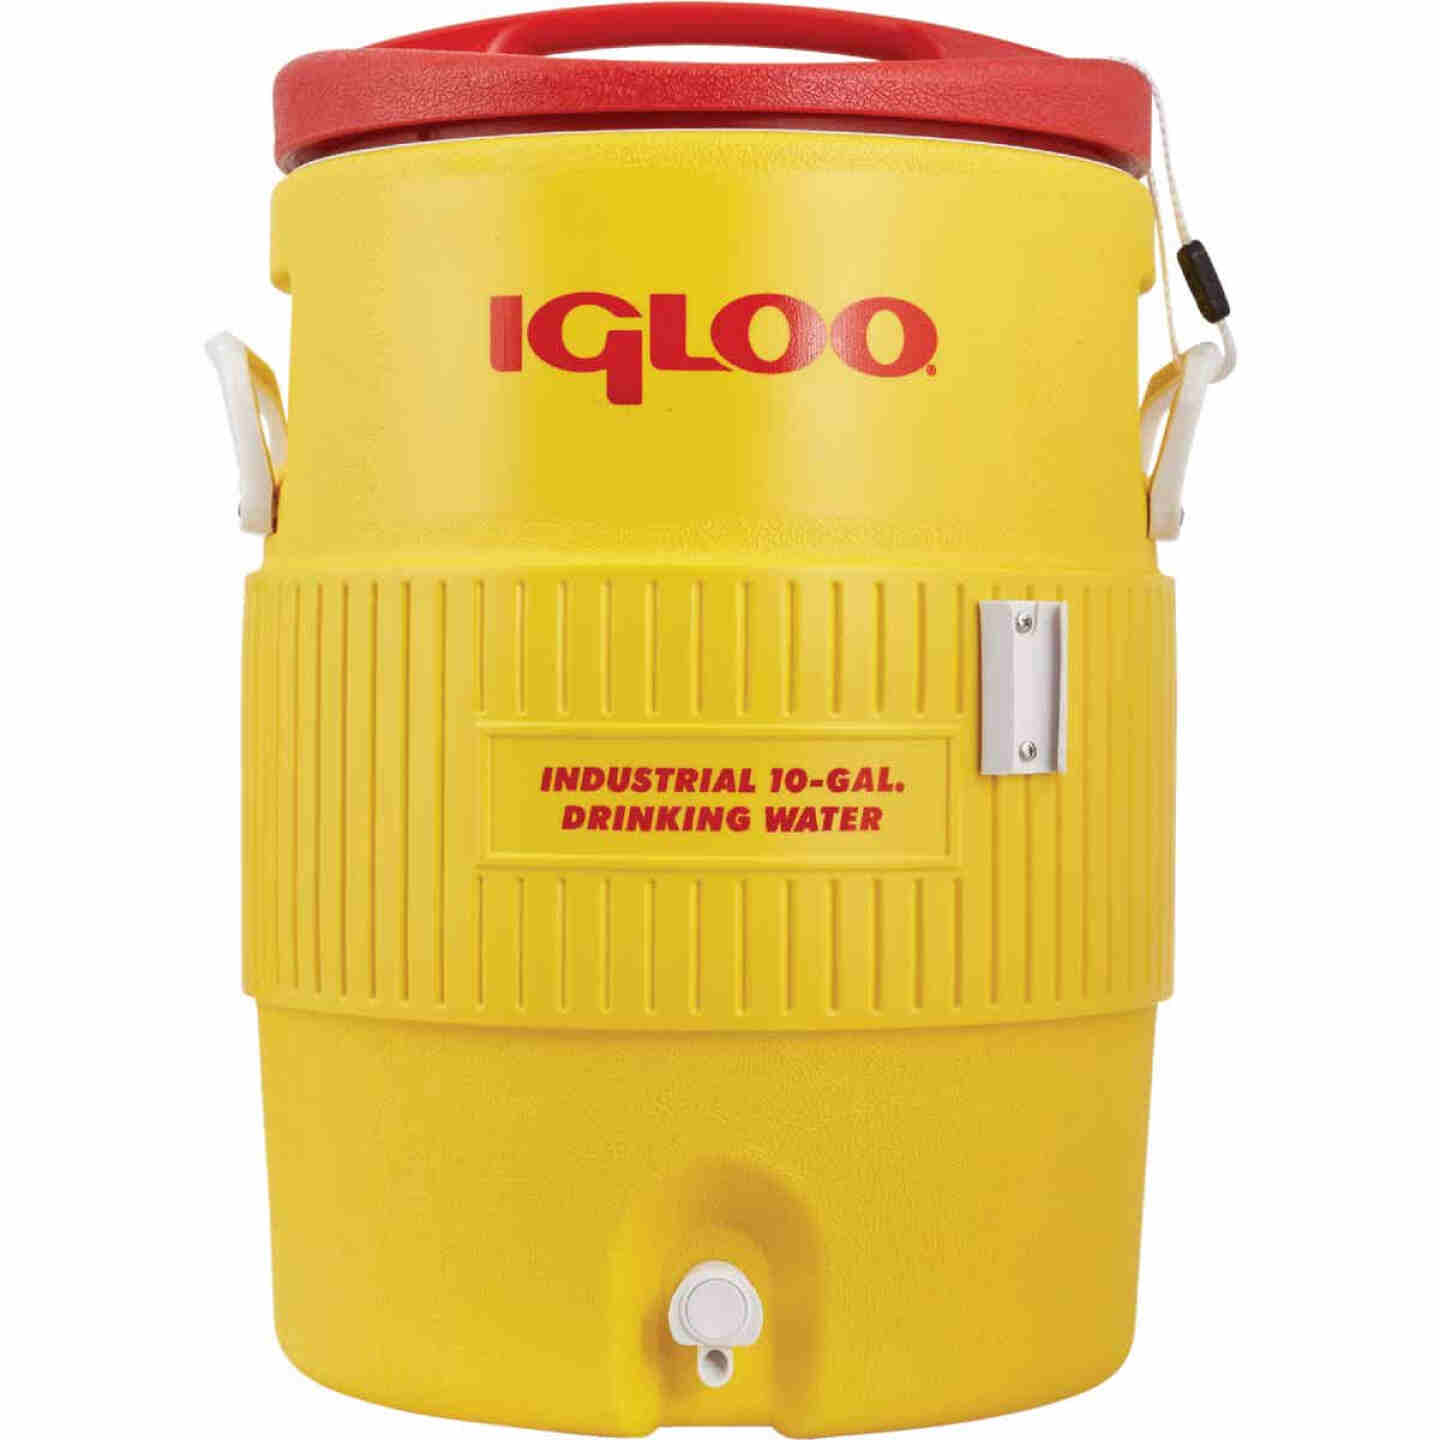 Igloo 10 Gal. Yellow Industrial Water Jug with Cup Dispenser Bracket Image 2